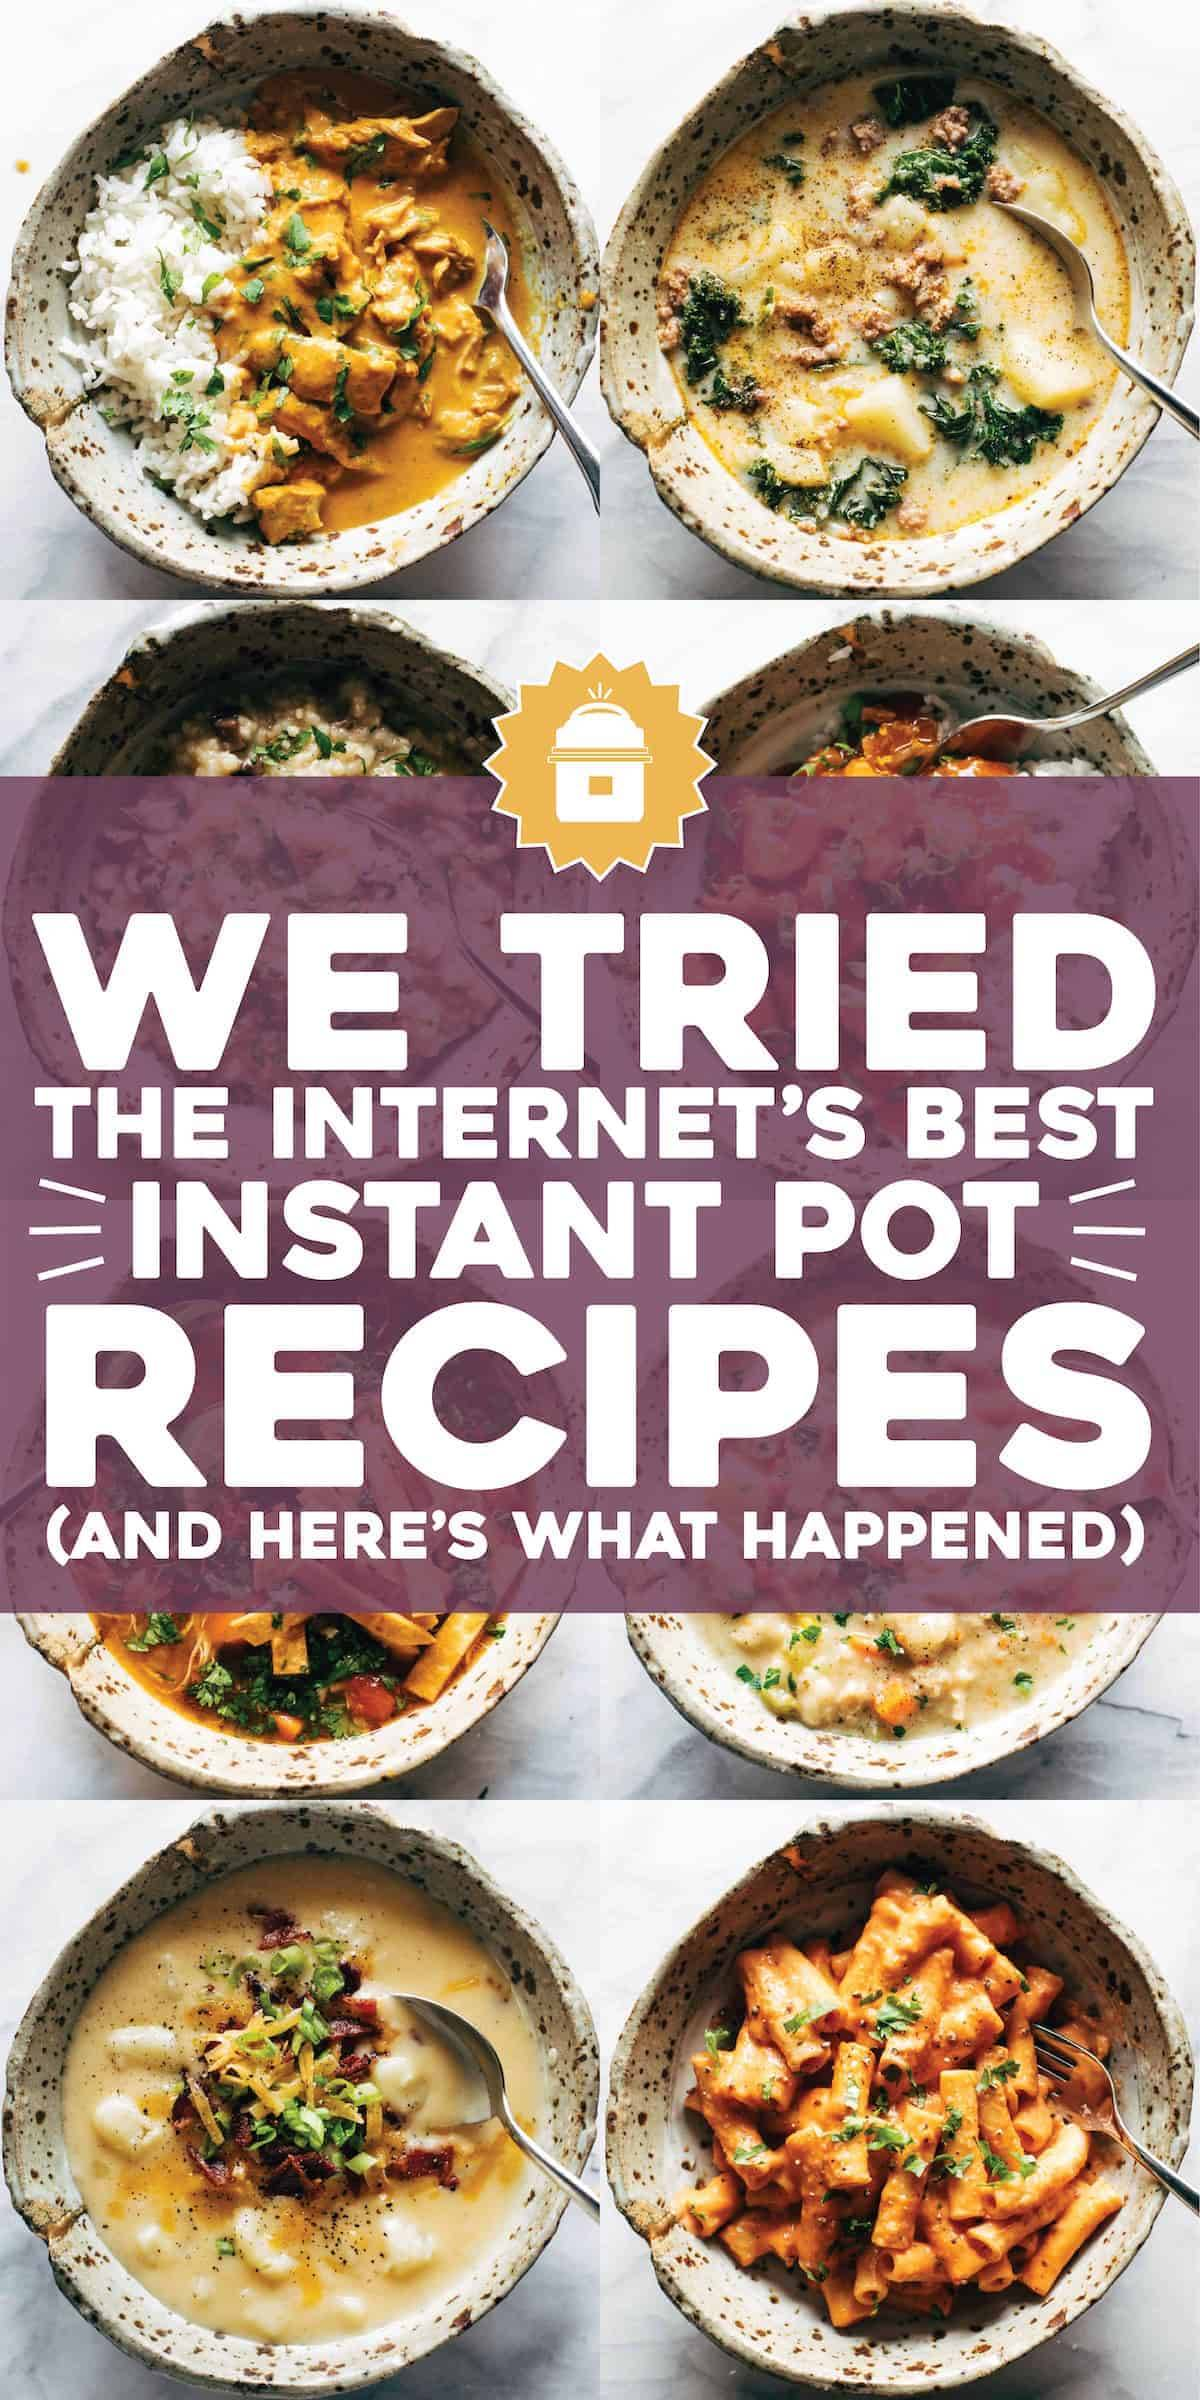 We Tried 10 of the Internet's Best Instant Pot Recipes. And These Are Our Favorites.